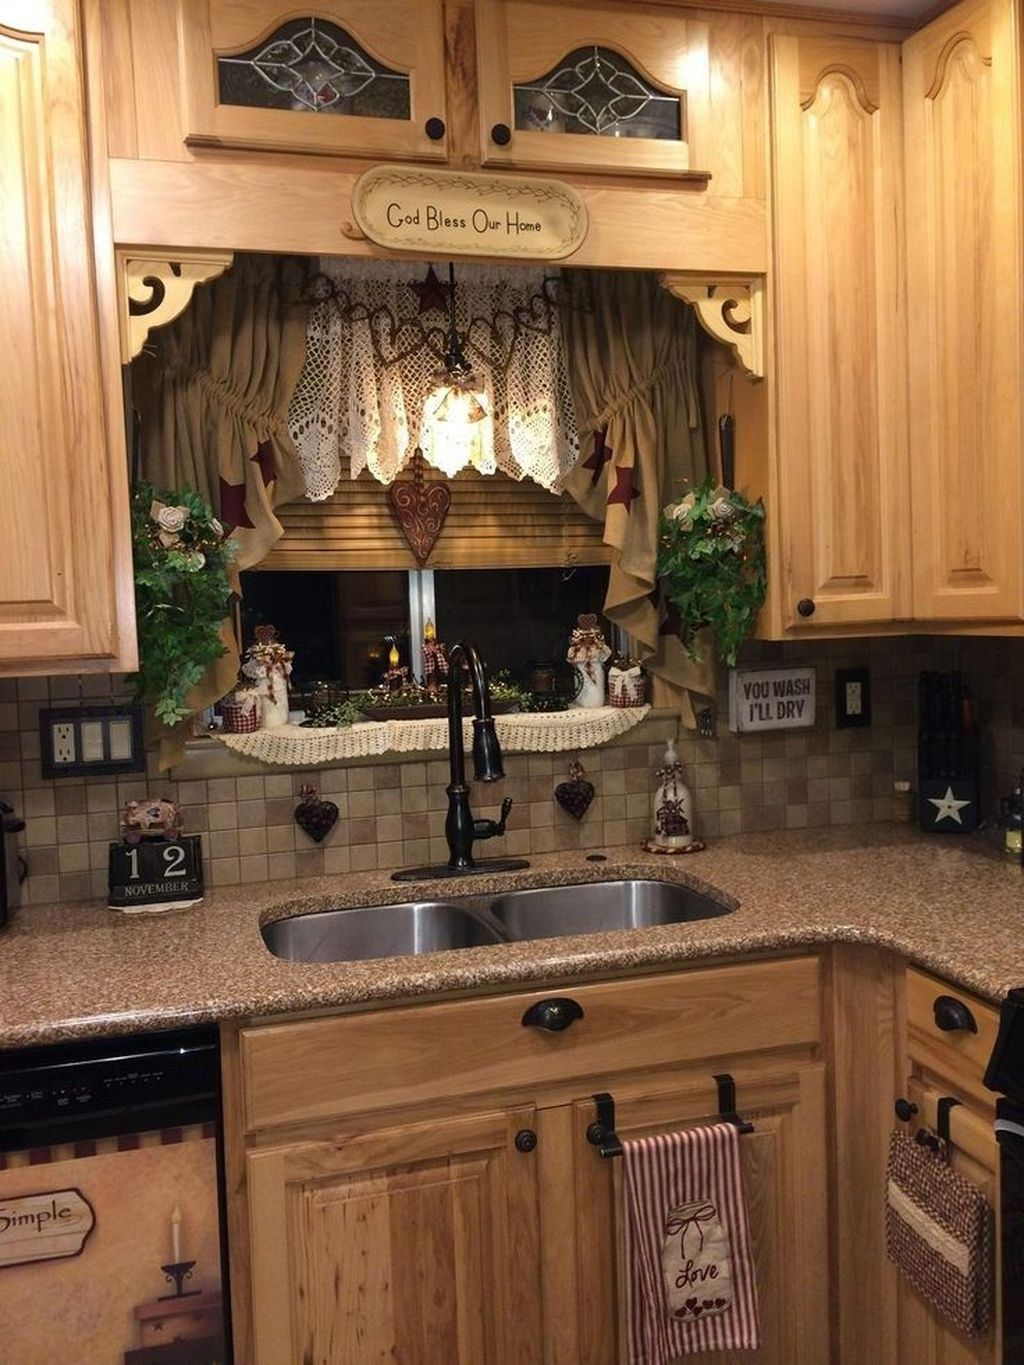 Latest Farmhouse Kitchen Decor Ideas On A Budget 39 Country Designs Rustic